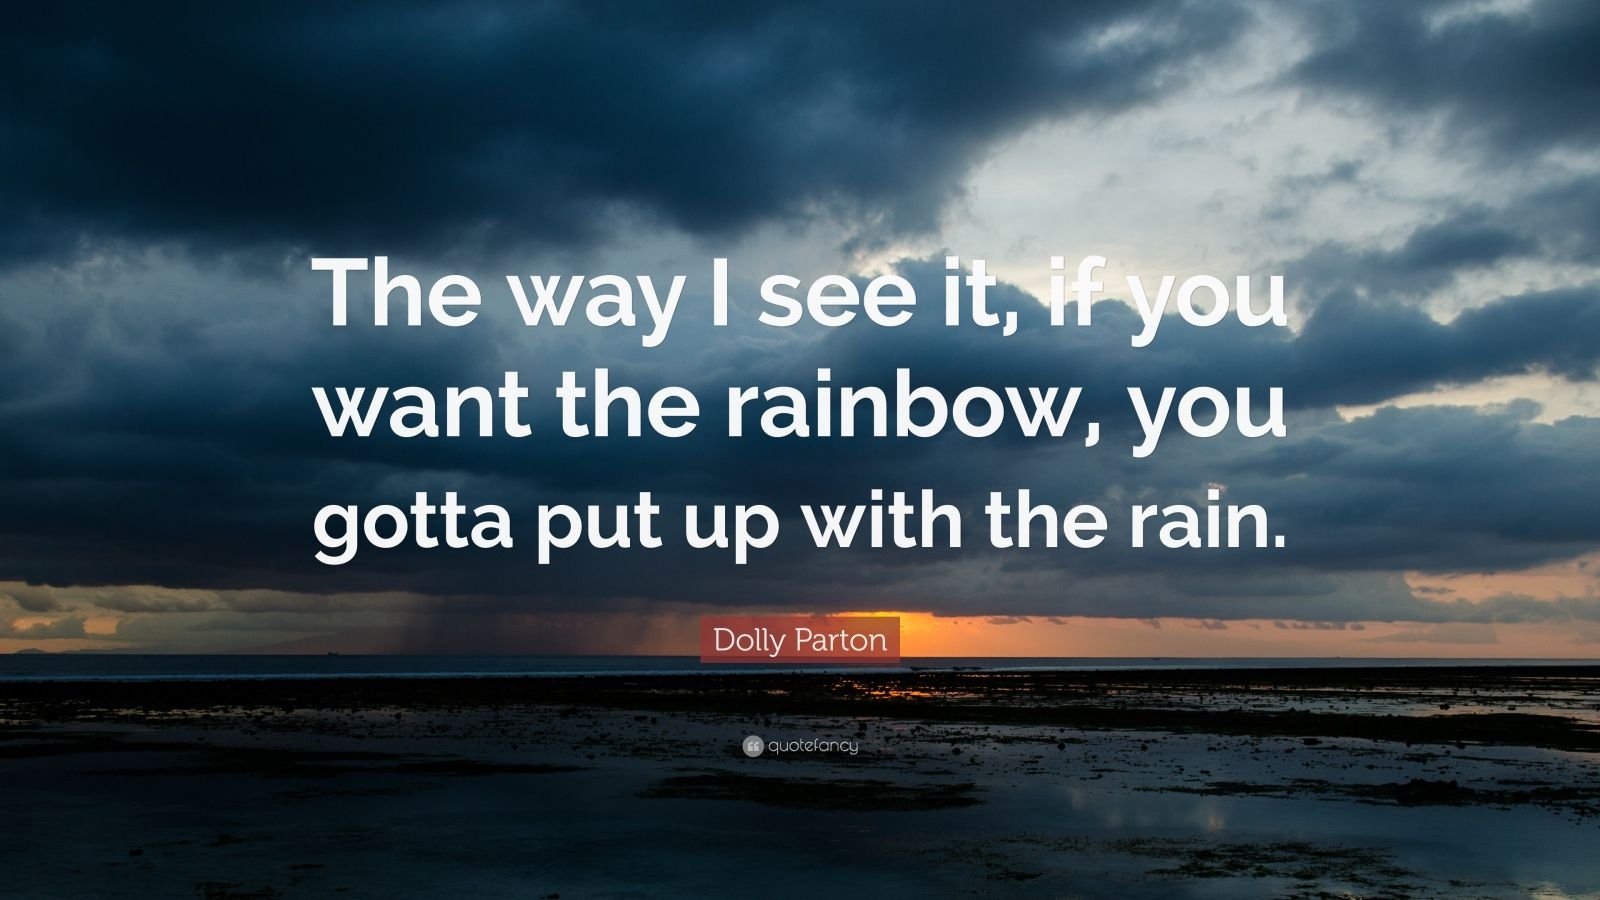 Casey Neistat Quotes Wallpaper Dolly Parton Quote The Way I See It If You Want The